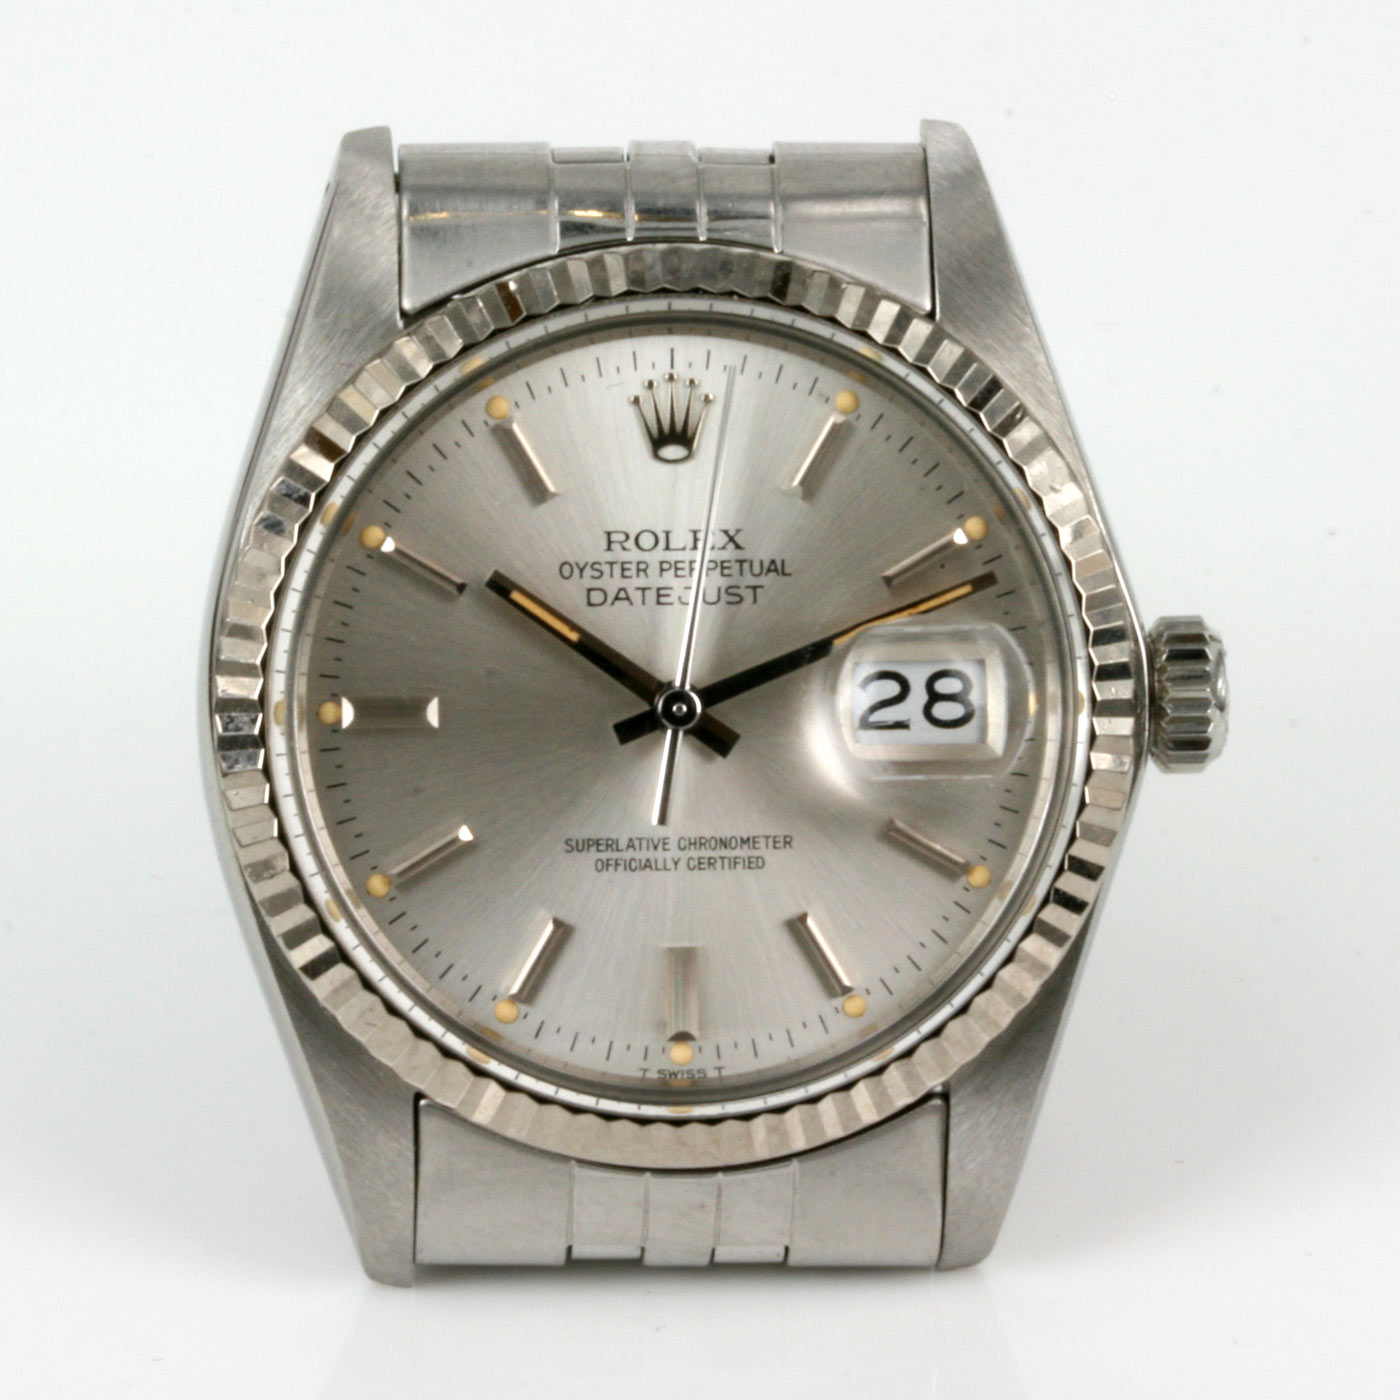 Rolex Second Hand Buy Second Hand Gents Rolex Datejust Model 16014 Sold Items Sold